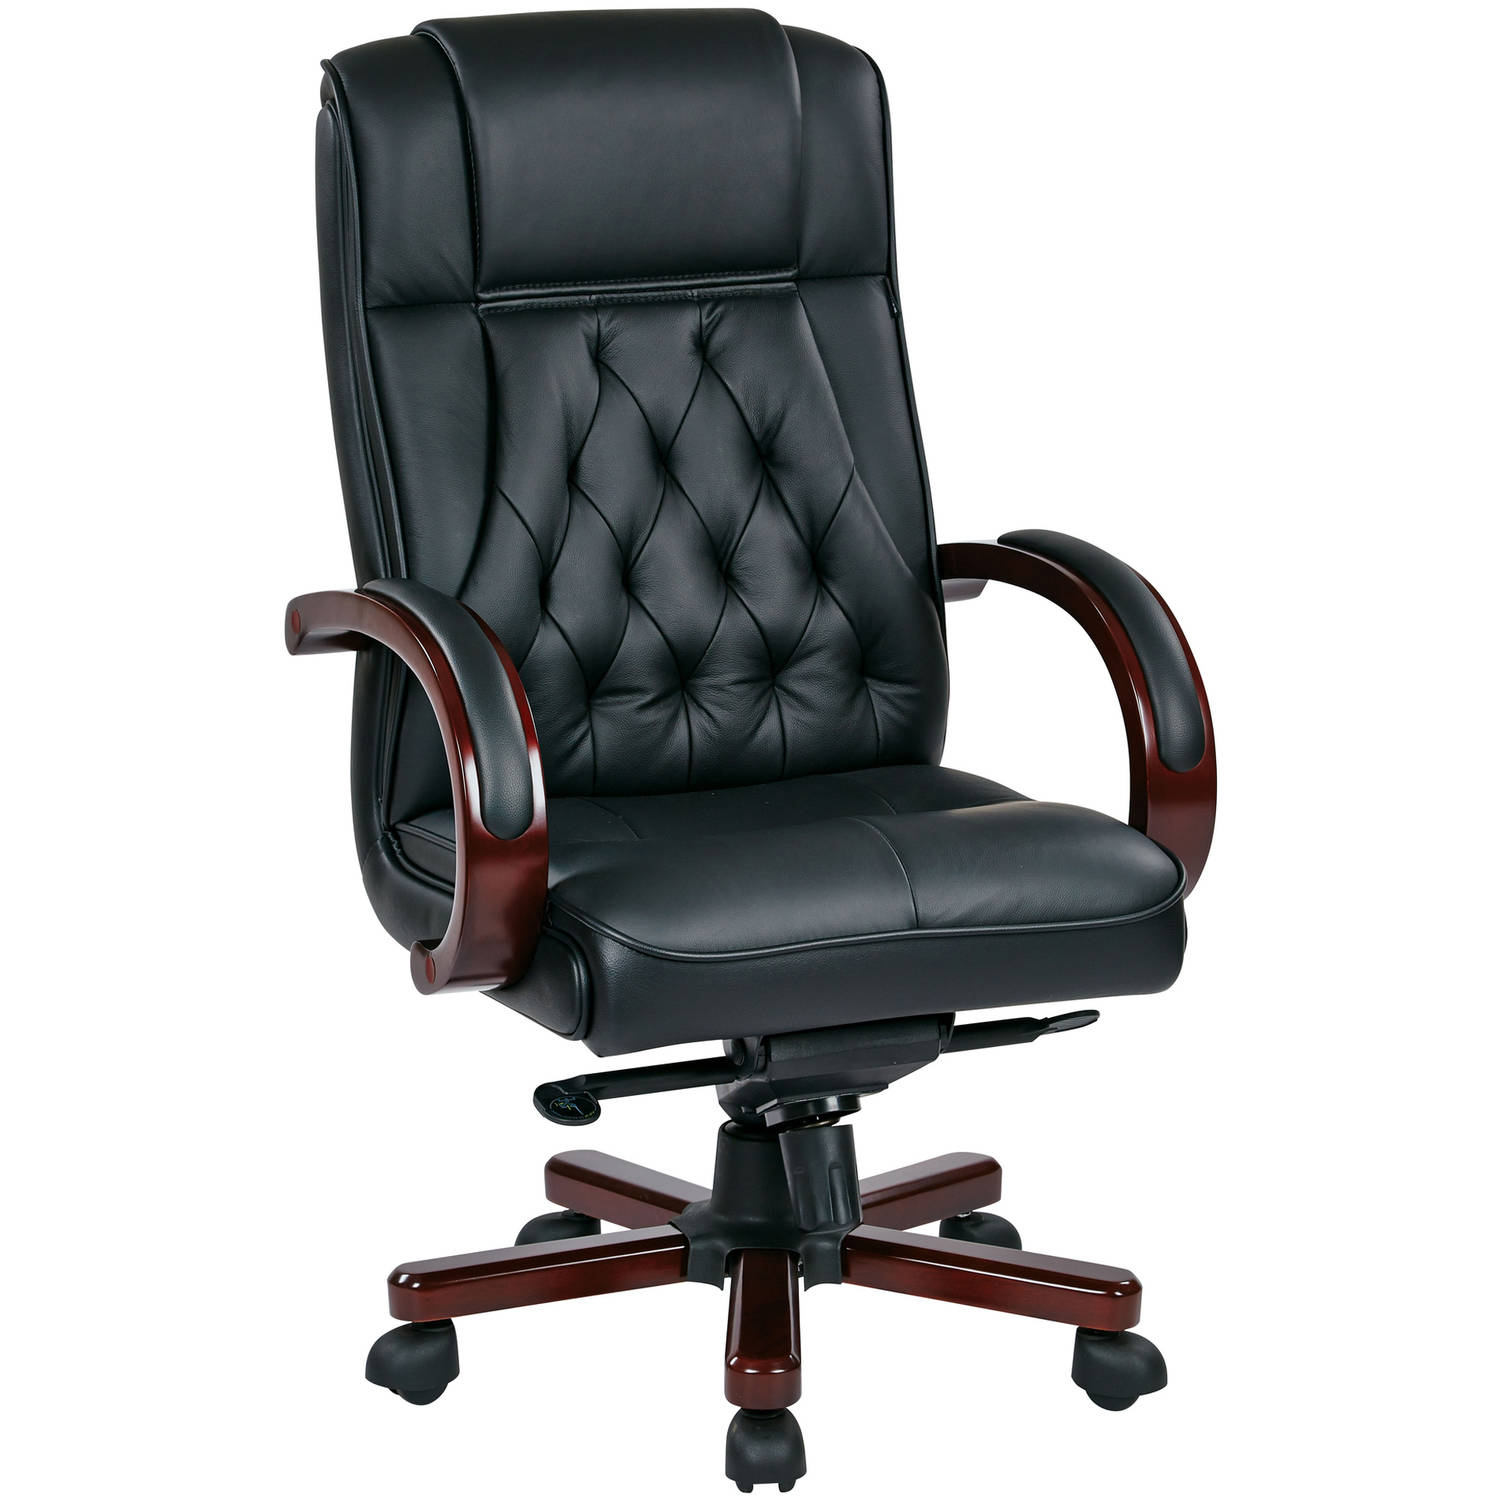 Leather Executive Chair with Royal Cherry Base and Dual Wheel Carpet Casters